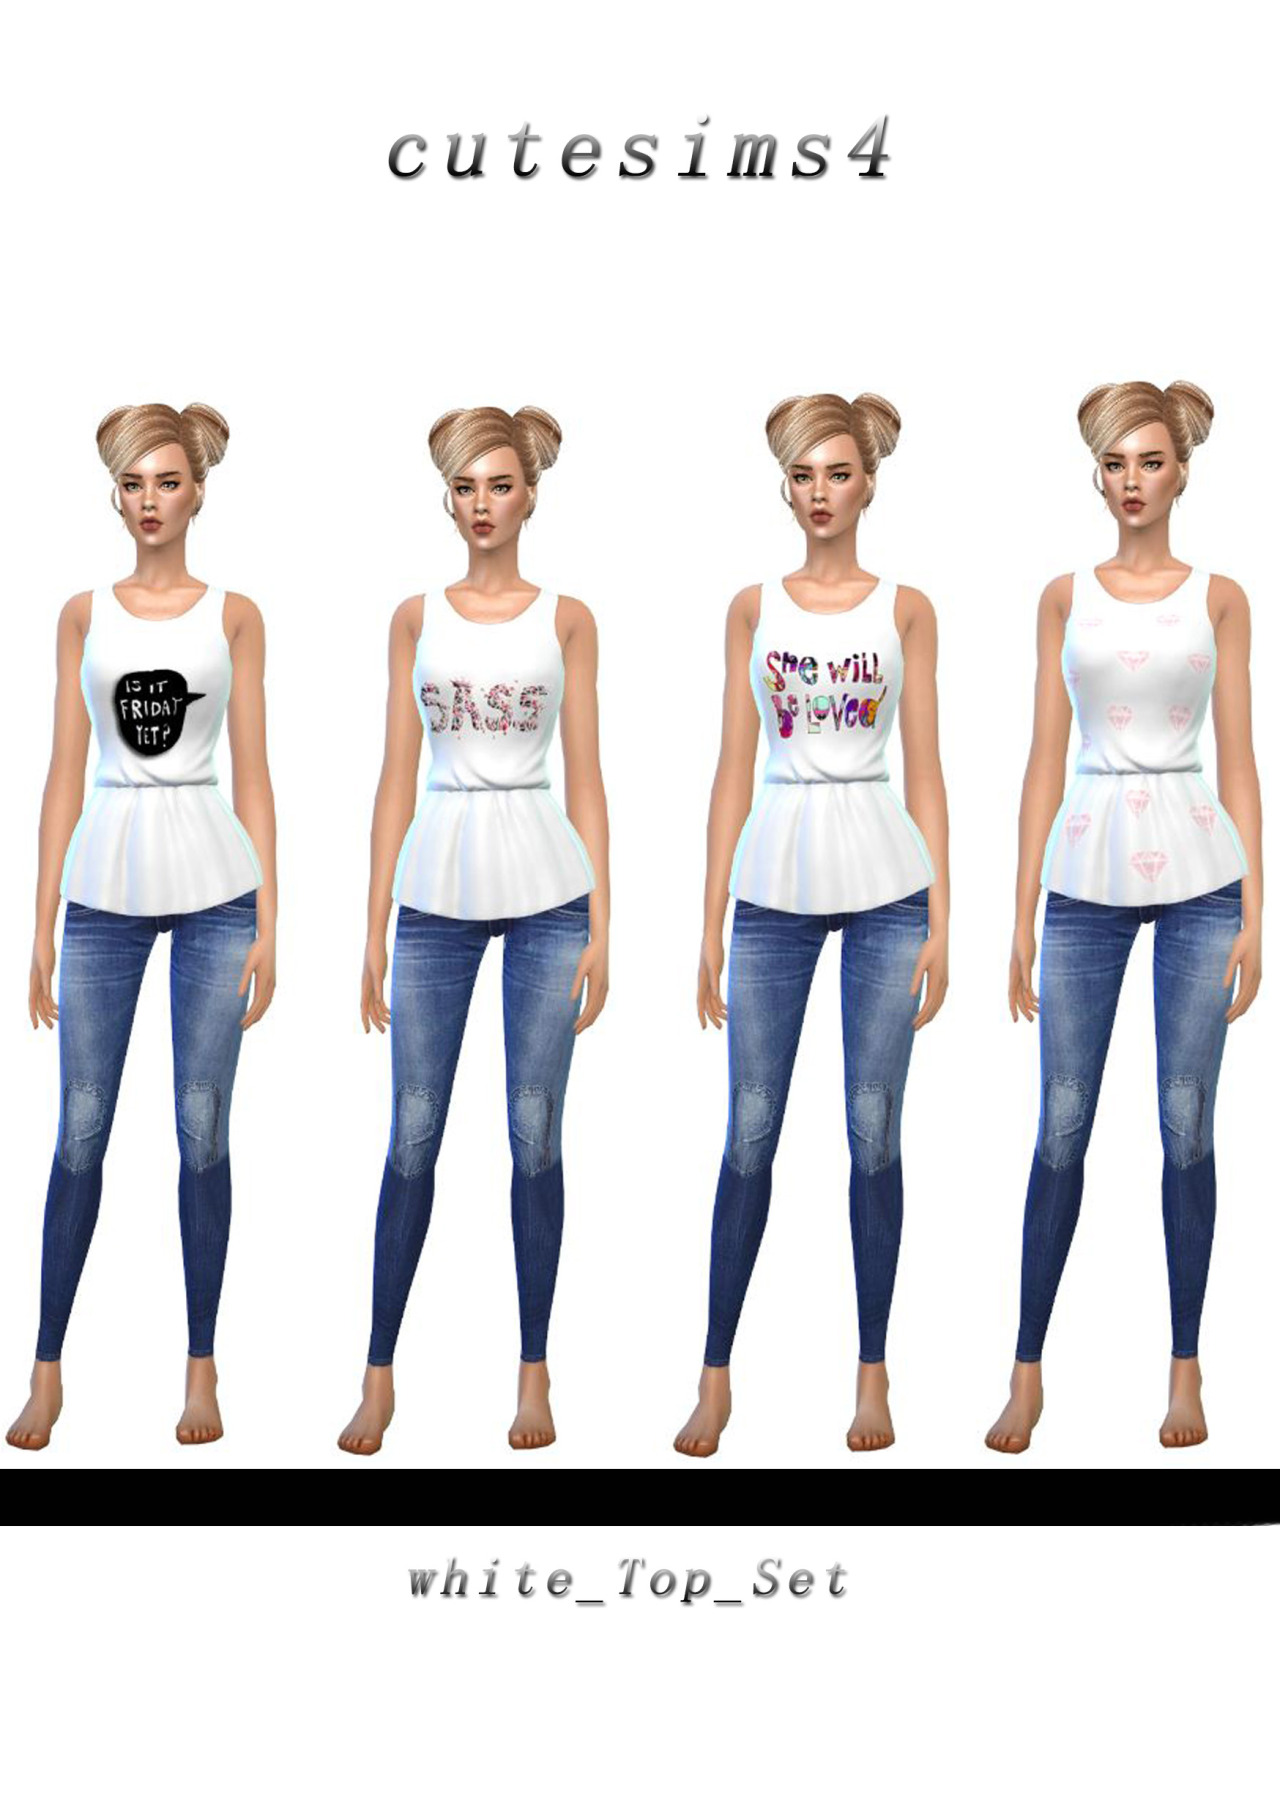 Cute Sims4  Clothing, Female : Casual tops